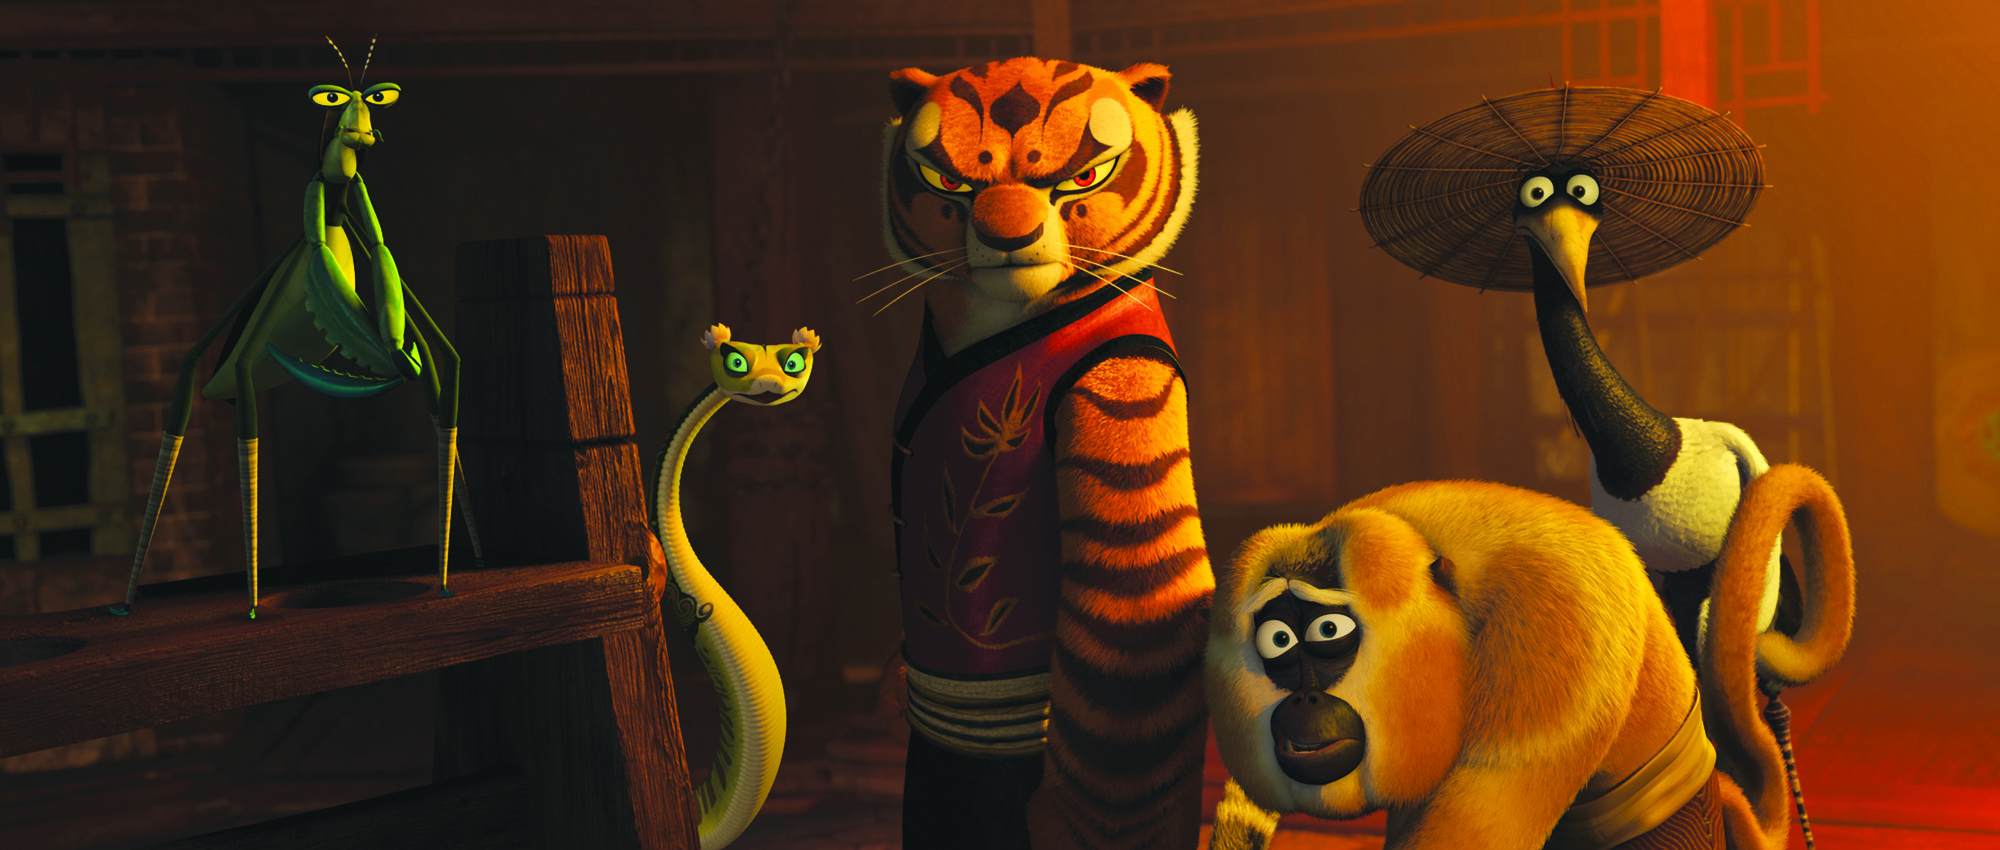 The kung fu panda images babysitting tigress wallpaper and